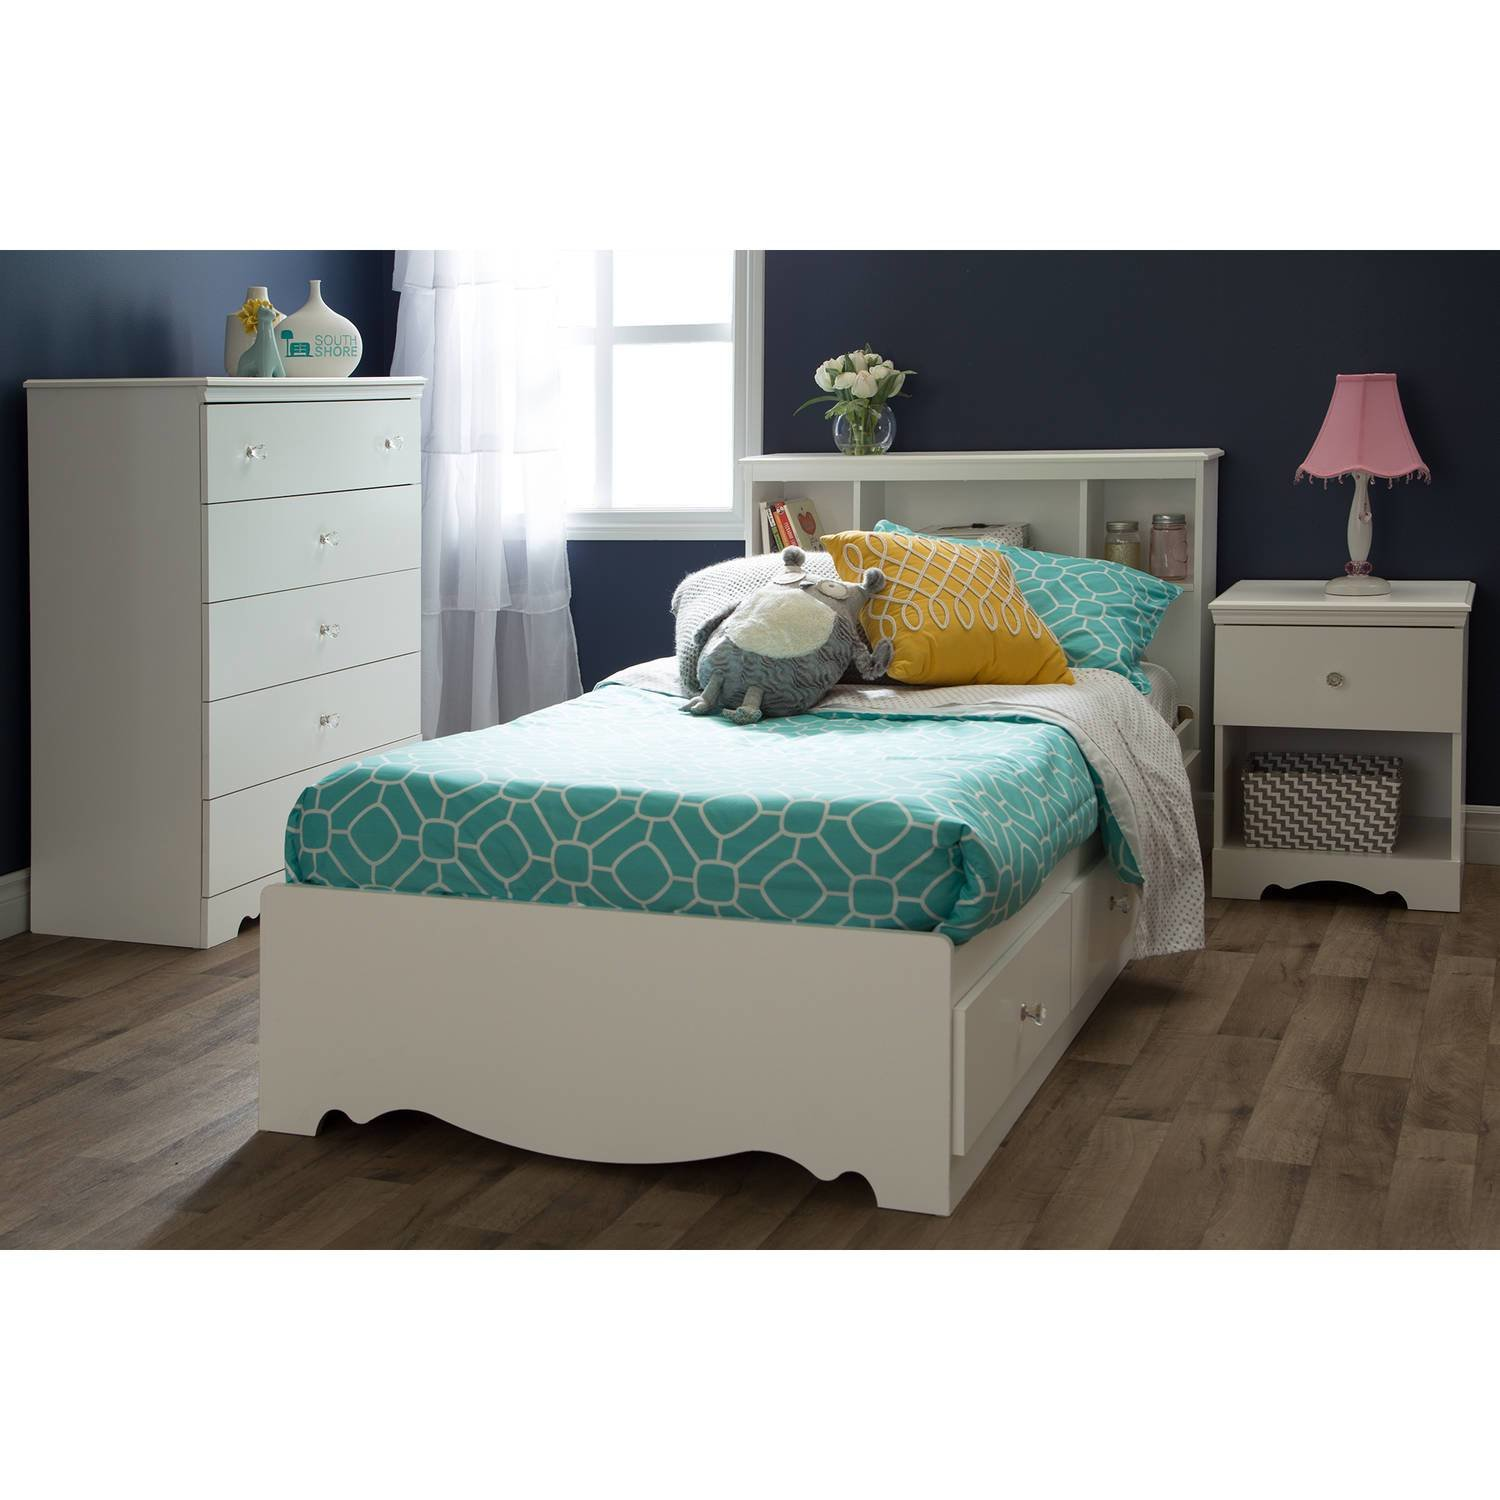 Best South Shore Crystal Kids Bedroom Furniture Collection Walmart Com With Pictures